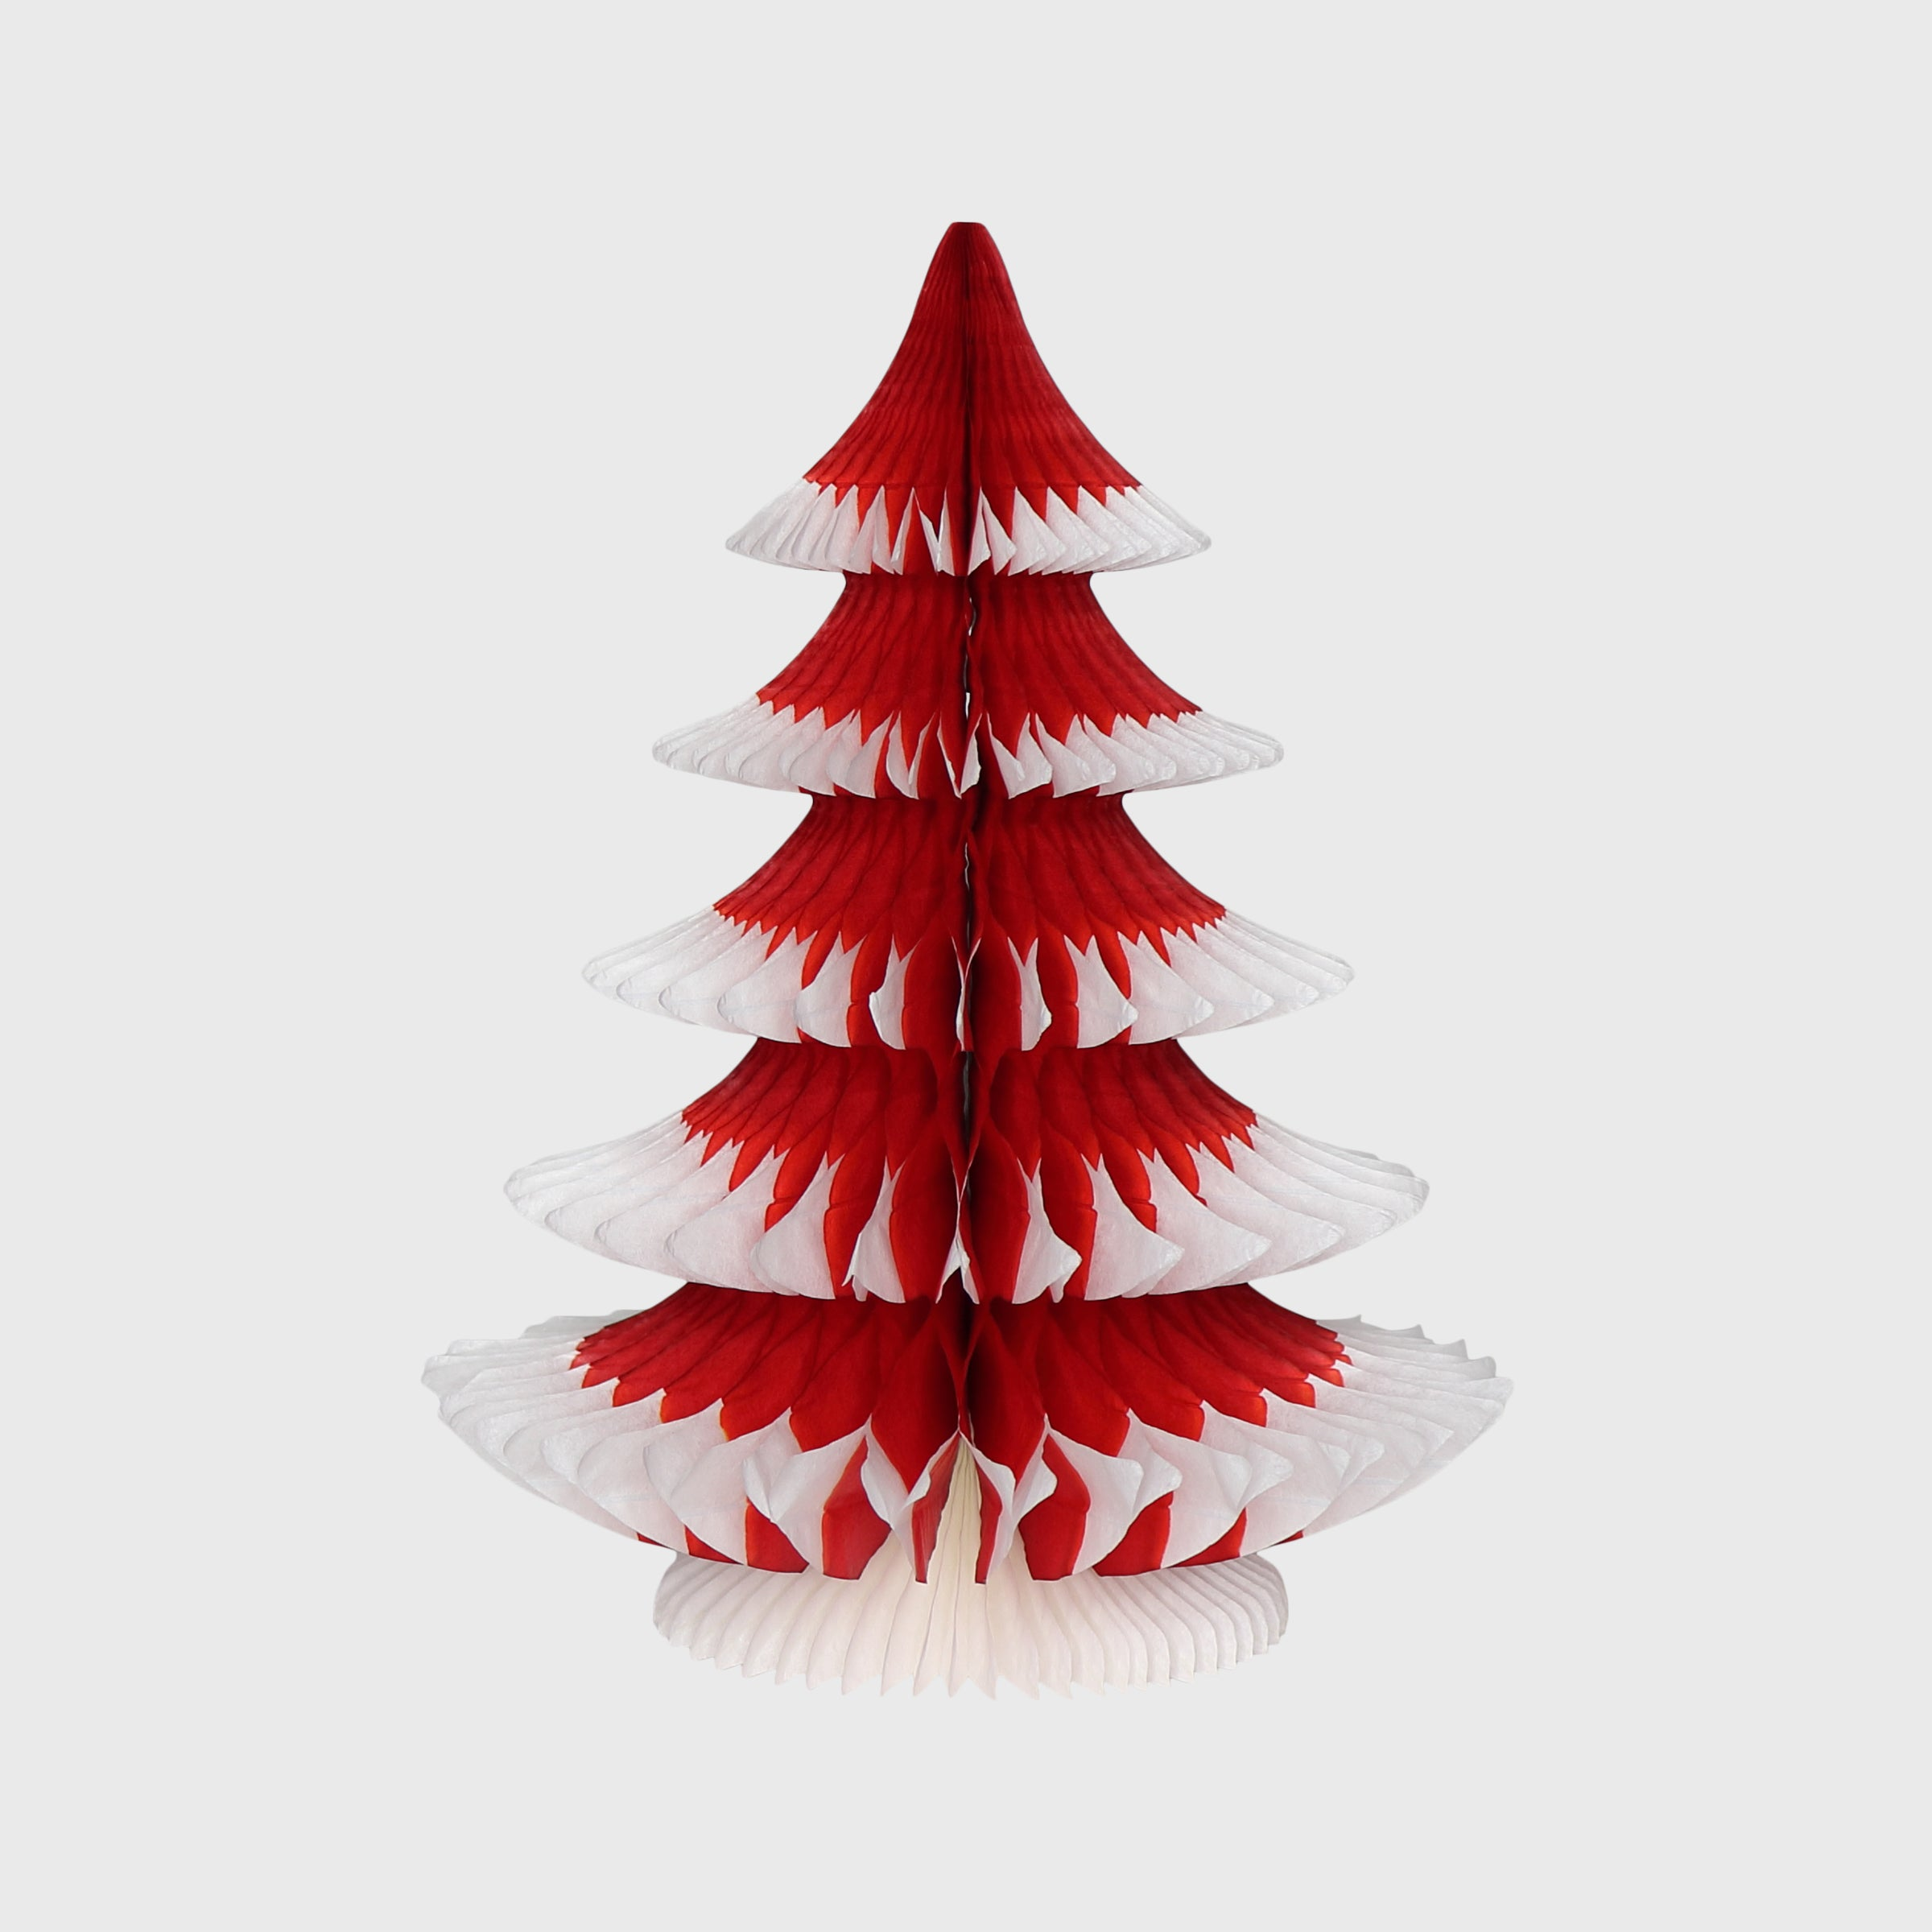 Snow Tipped Honeycomb Christmas Tree, Classic Red